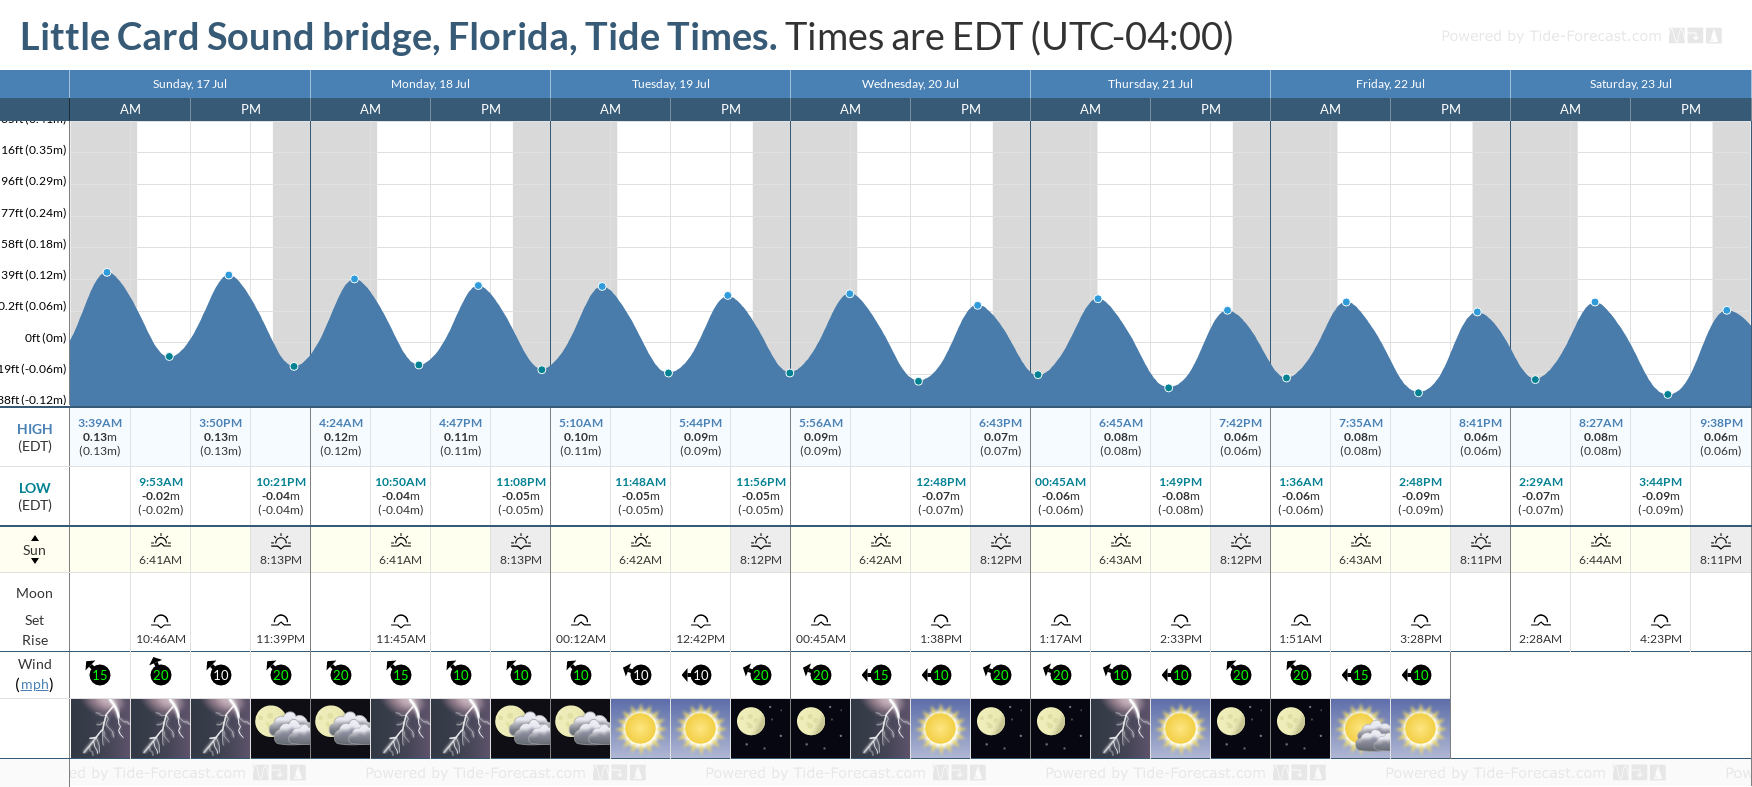 Little Card Sound bridge, Florida Tide Chart including high and low tide tide times for the next 7 days